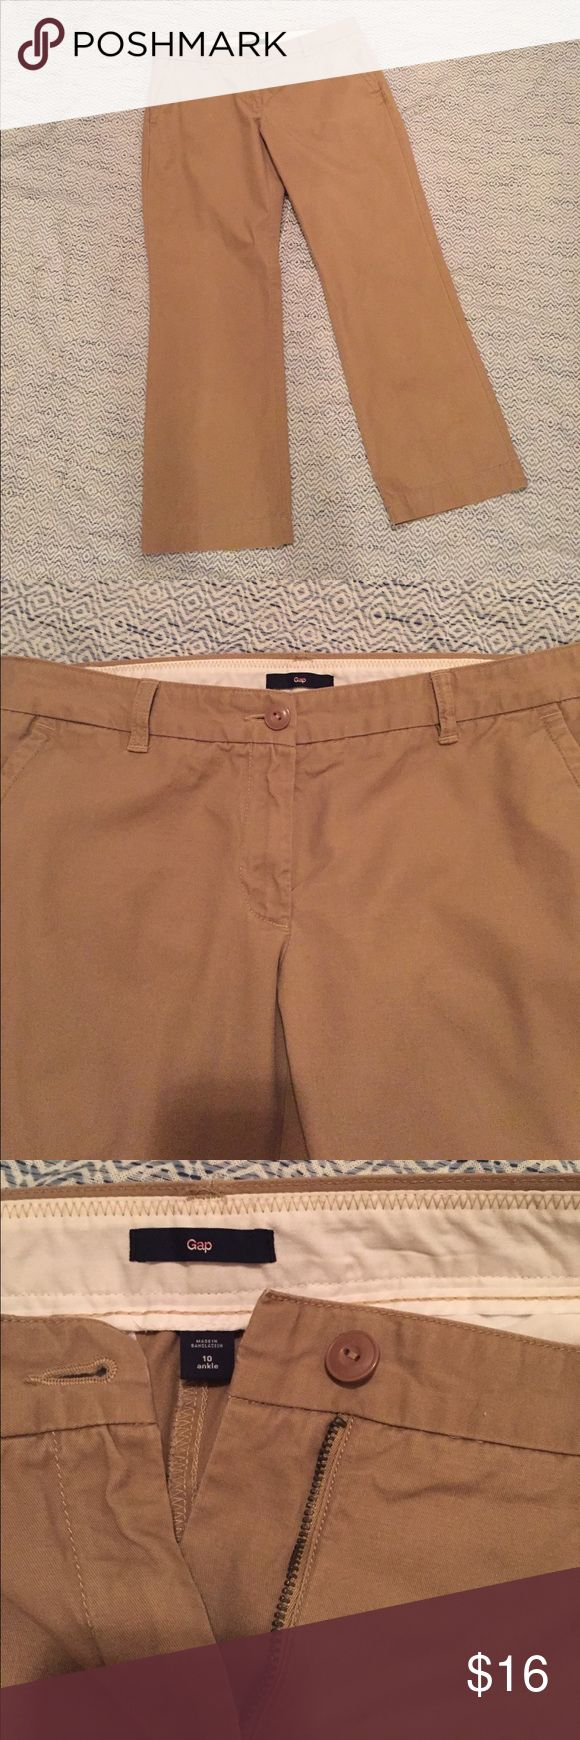 """Gap women's khaki pants size 10 ankle EUC Very nice pair of khaki pants from the Gap in size 10 ankle.  29"""" inseam.  10"""" leg openings. Color is a darker khaki.  Barely worn and in EUC. No holes, stains or obvious wash wear. GAP Pants"""